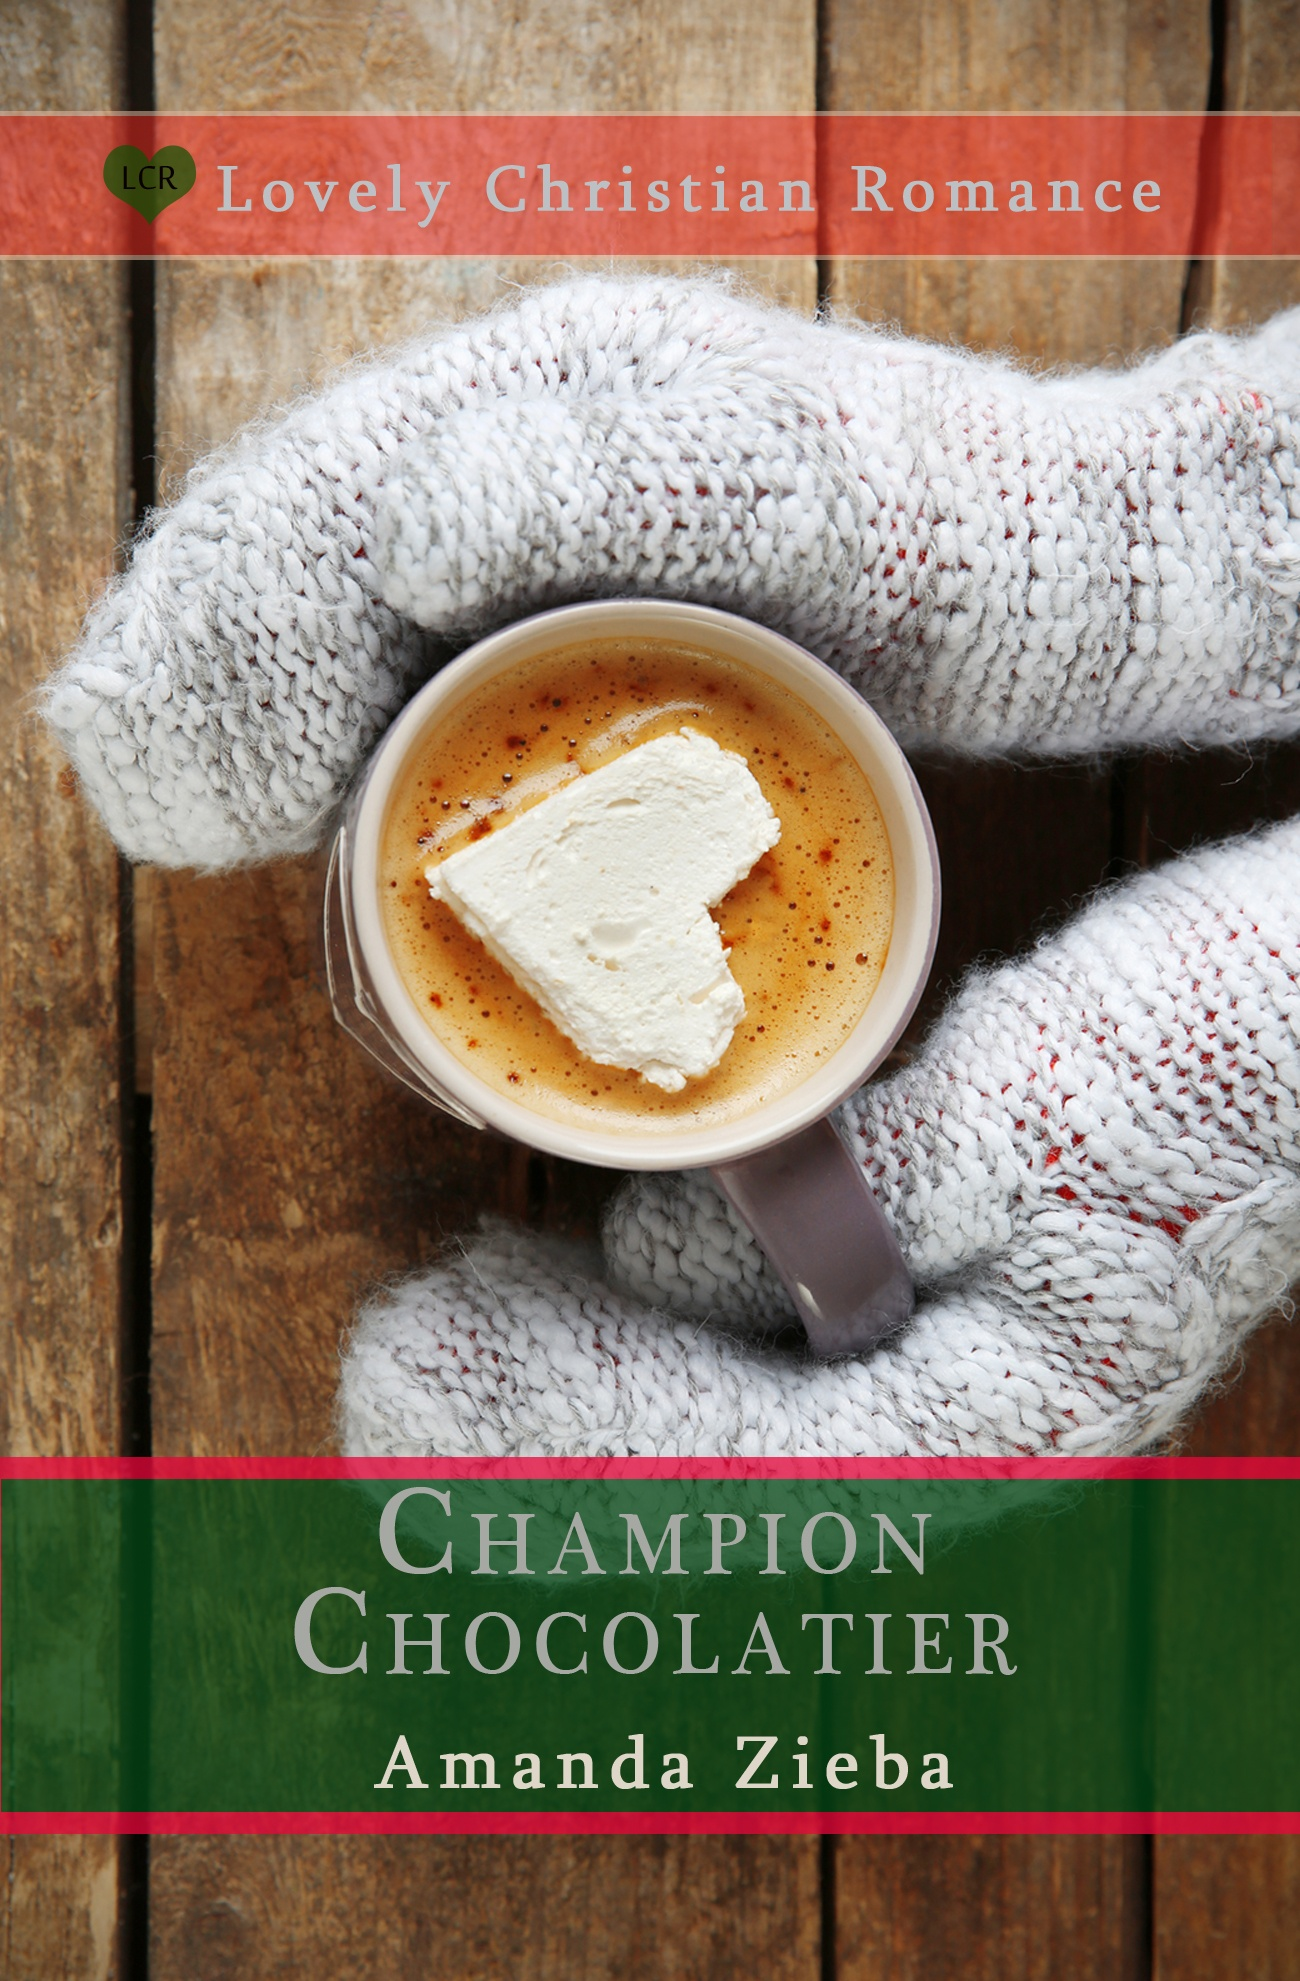 The cover of my newest book Champion Chocolate! It will be released on September 1, 2016 with 5 other chocolate Christmas novellas!